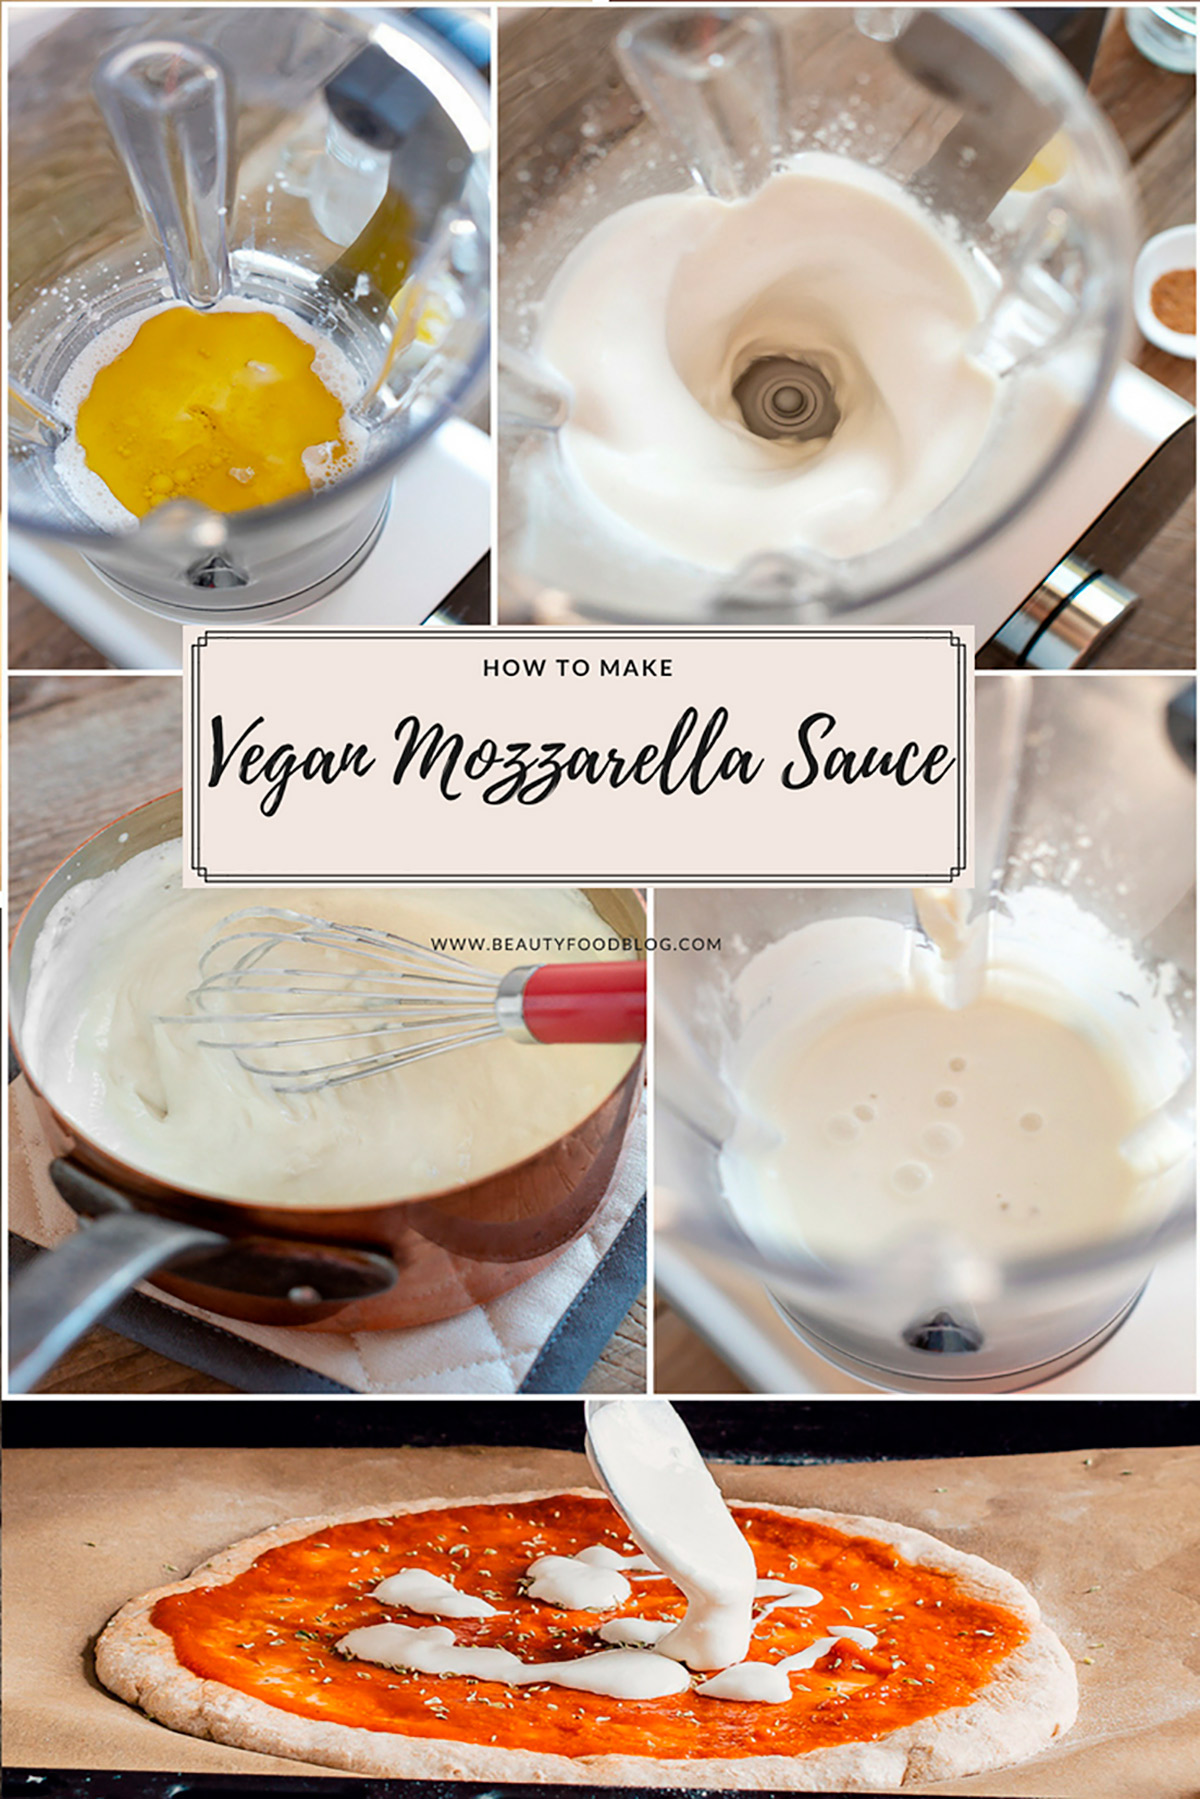 SALSA MOZZARELLA VEGAN facile e veloce solo 5 ingredienti mozzarella vegan filante VEGAN MOZZARELLA SAUCE simple easy only 5 INGREDIENTS #glutenfree